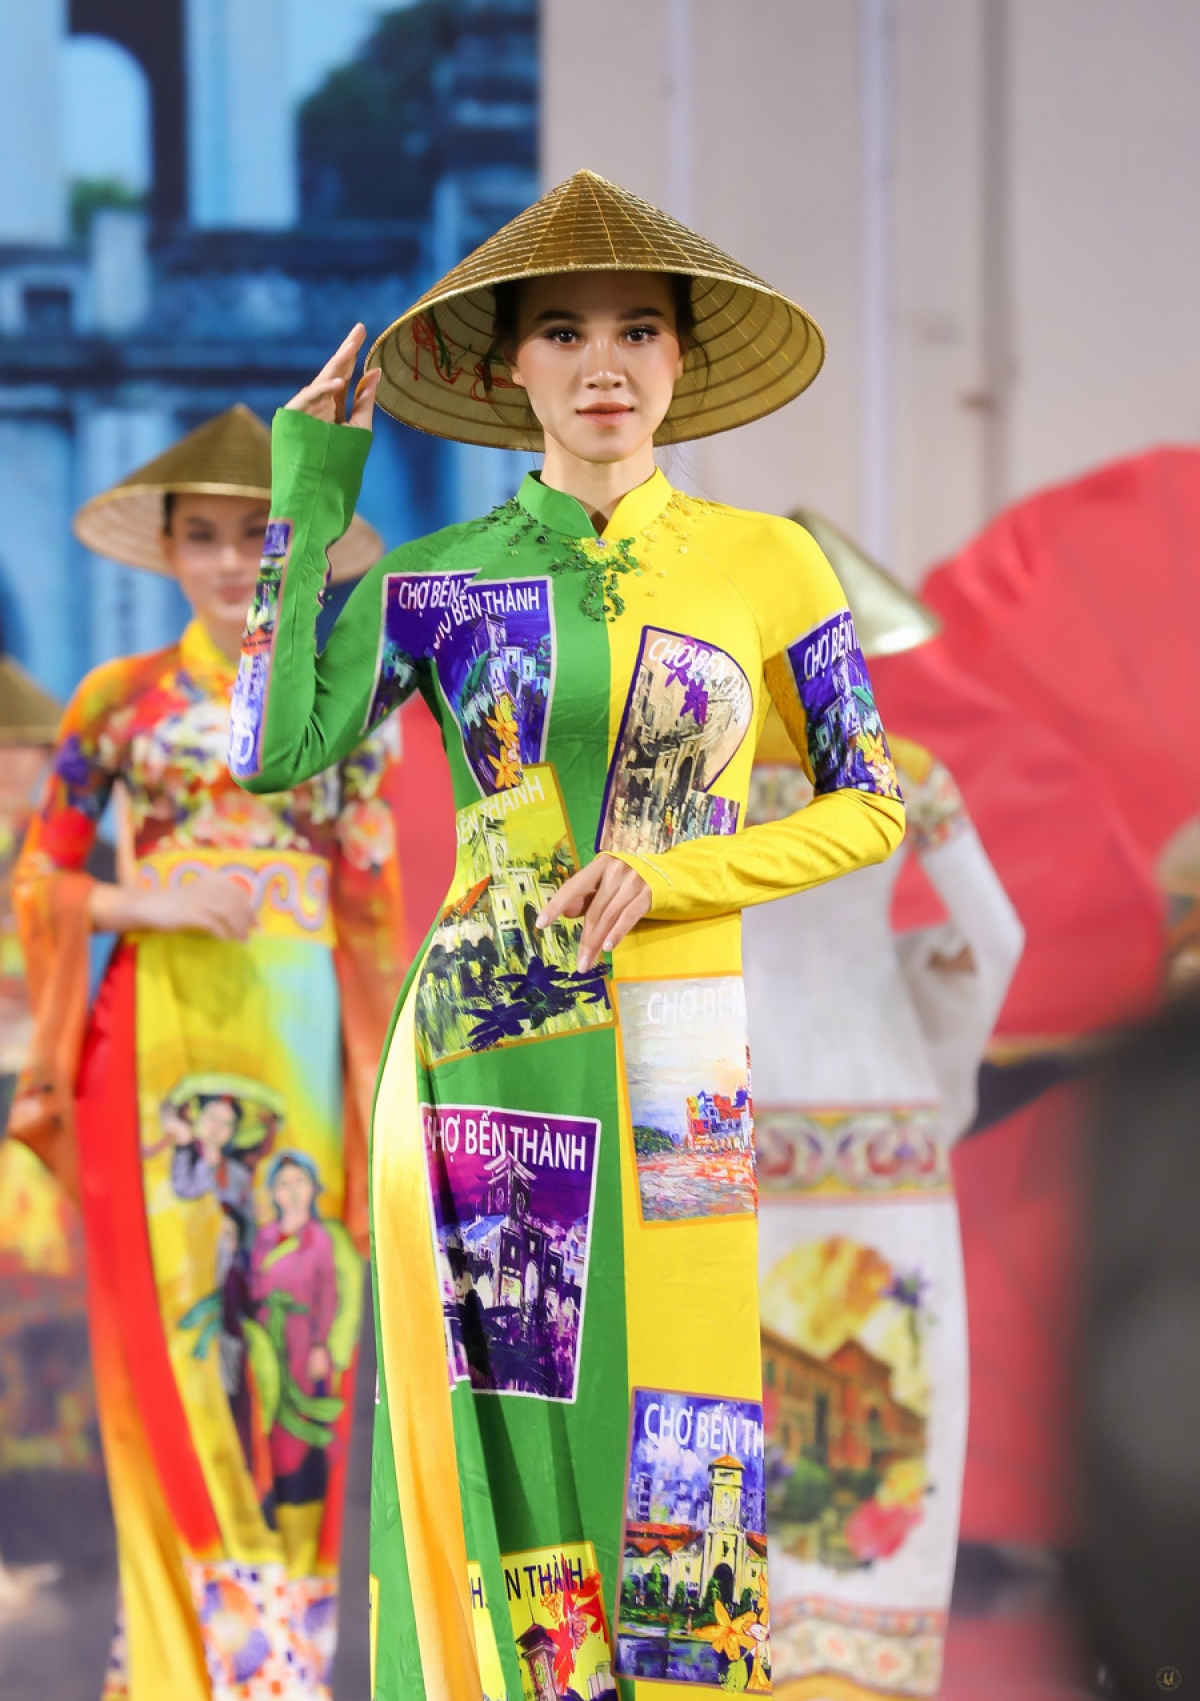 Ho Chi Minh City is hosting the Ao Dai Festival 2020, with many fashion shows taking place in an effort to present collections created by local designers, including a unique collection by Hoai Nam.